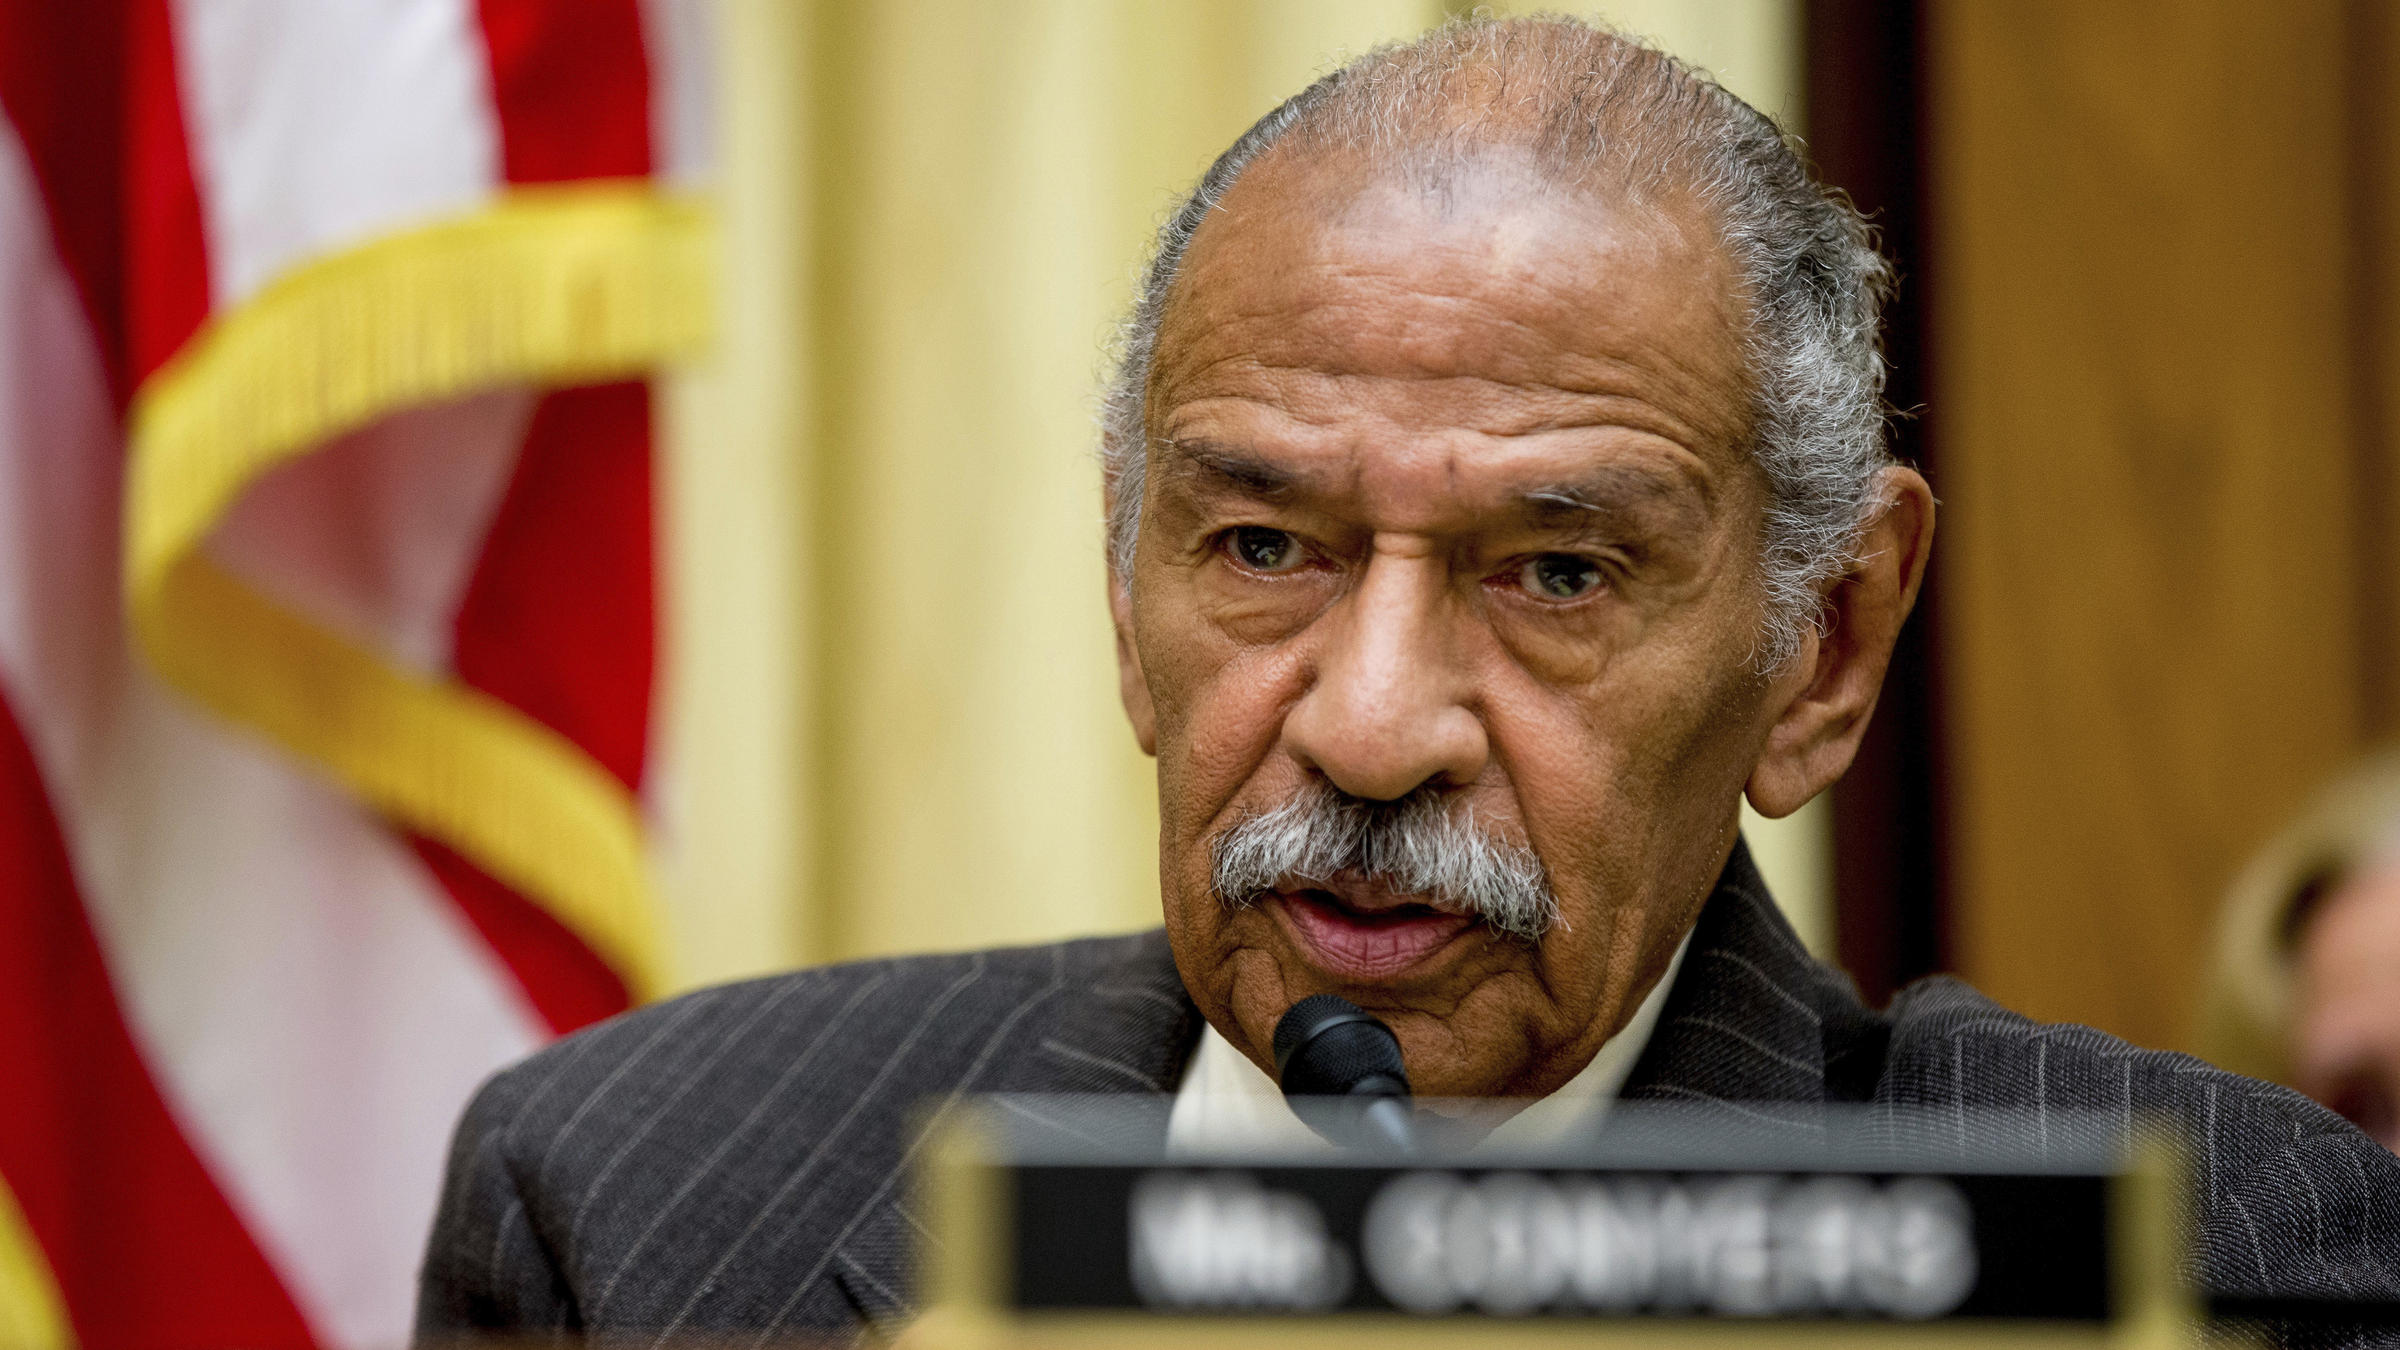 Rep. John Conyers D-Mich.,has been accused of sexual harassment by former staffers